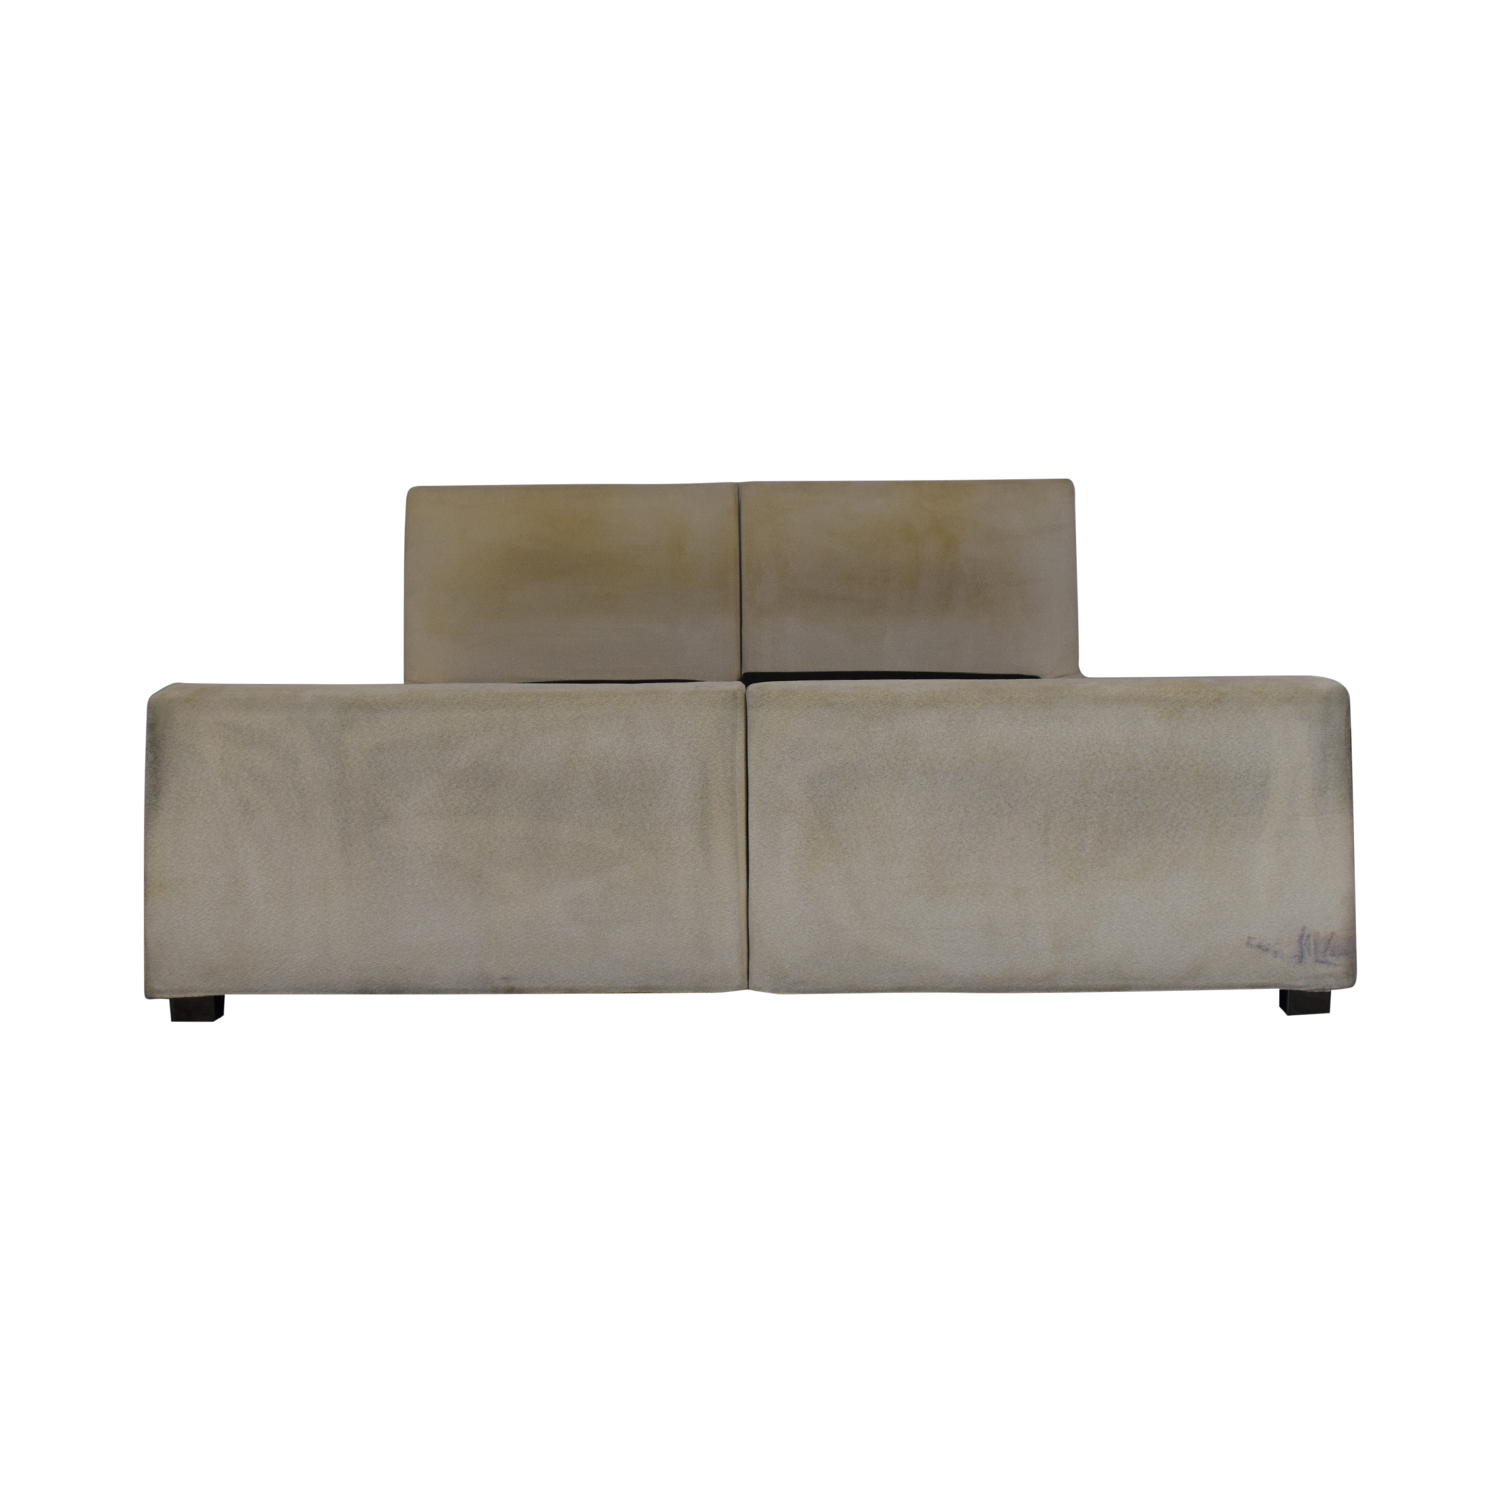 King Bed Dimentions 86 Off Minotti Minotti King Bed Frame Beds